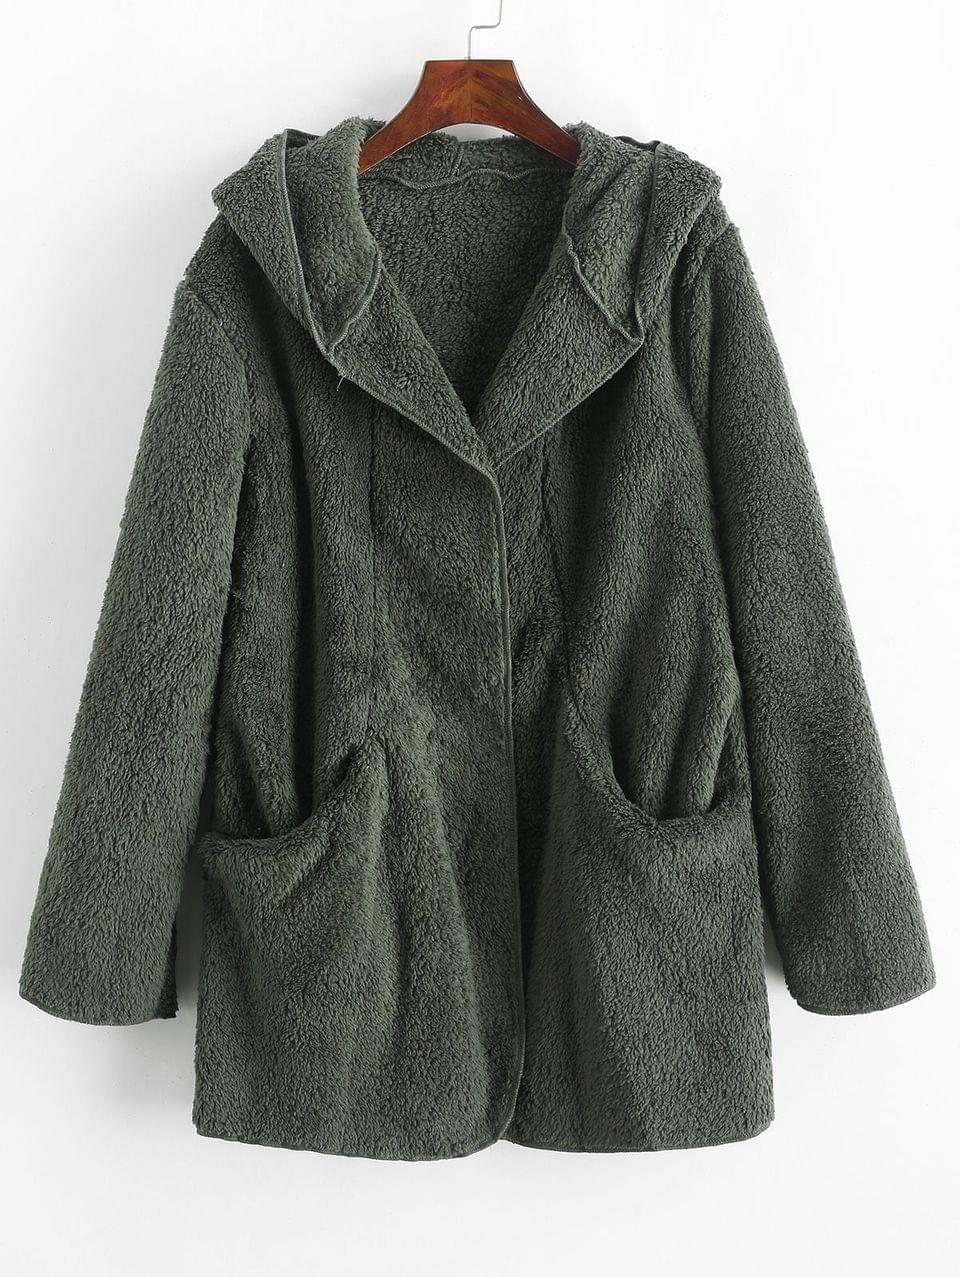 Women's Solid Color Pockets Hooded Teddy Coat - Green L